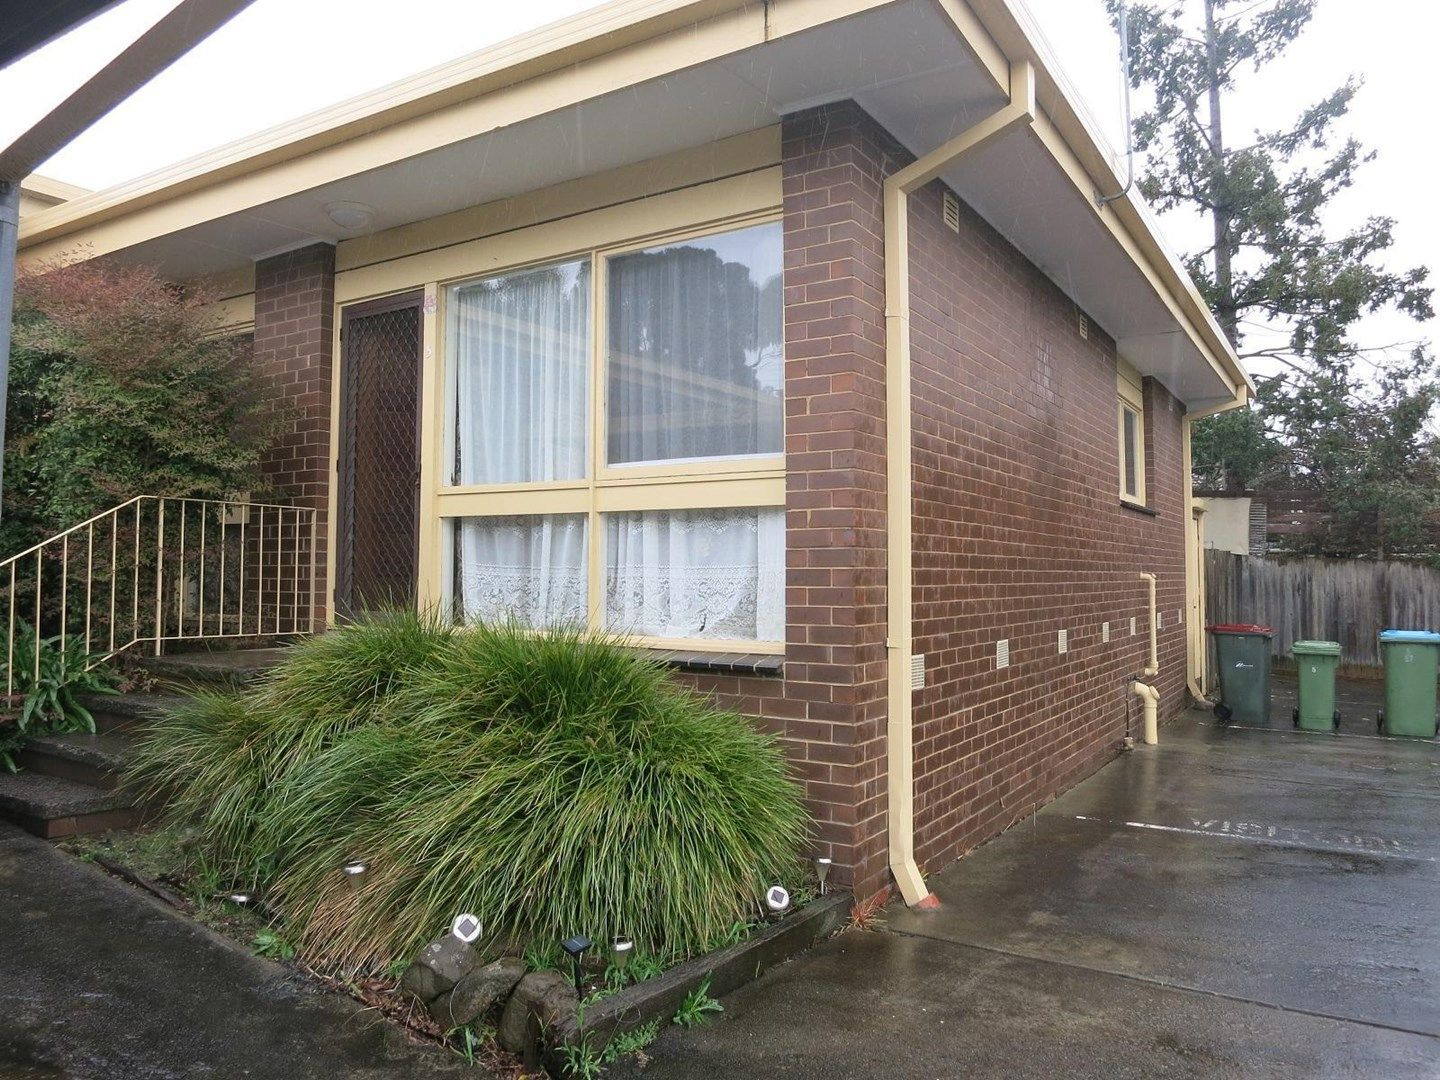 5/57 Mount View Parade, Croydon VIC 3136, Image 0